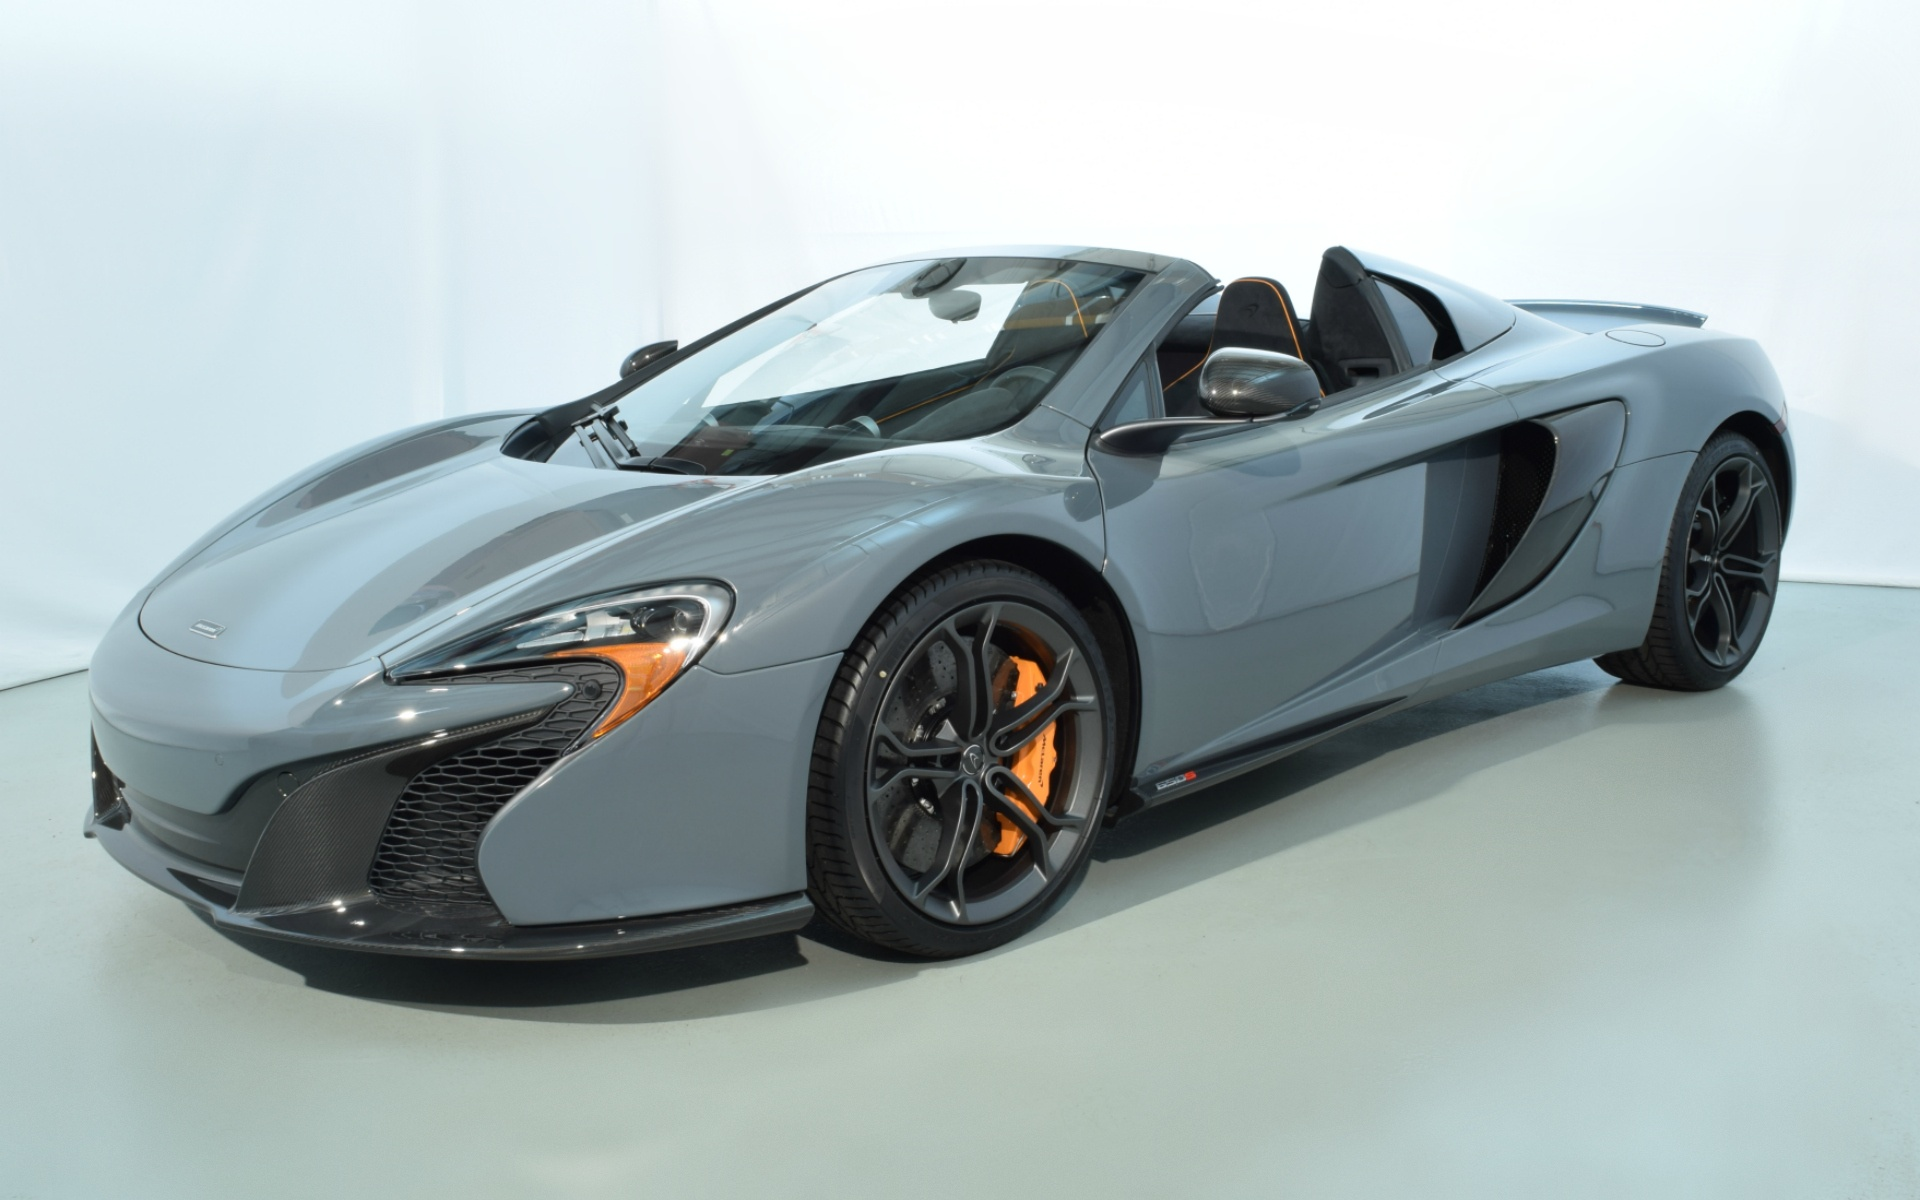 2016 mclaren 650s spider for sale in norwell, ma 006056 | mclaren boston